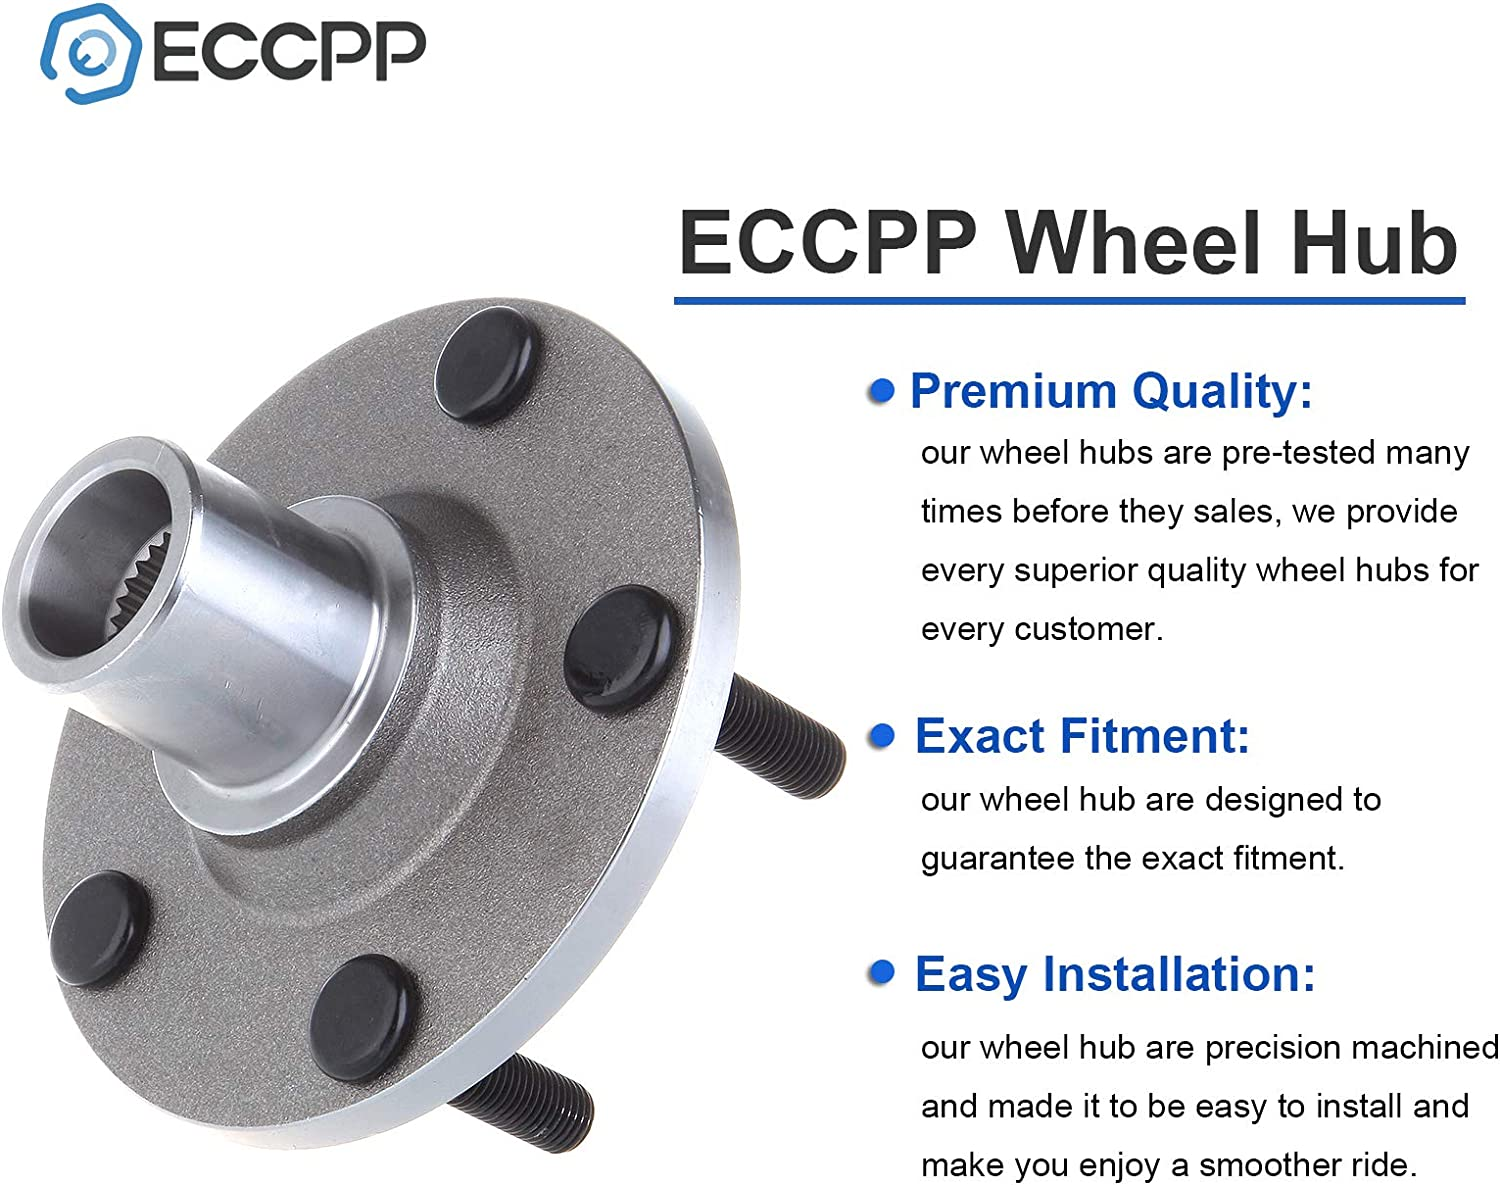 ECCPP Wheel Hub and Bearing Assembly Front 518515 fit 2001-2012 Ford Escape Mazda Tribute Mercury Mariner Replacement for 5 lugs wheel hubs no ABS 2Pcs